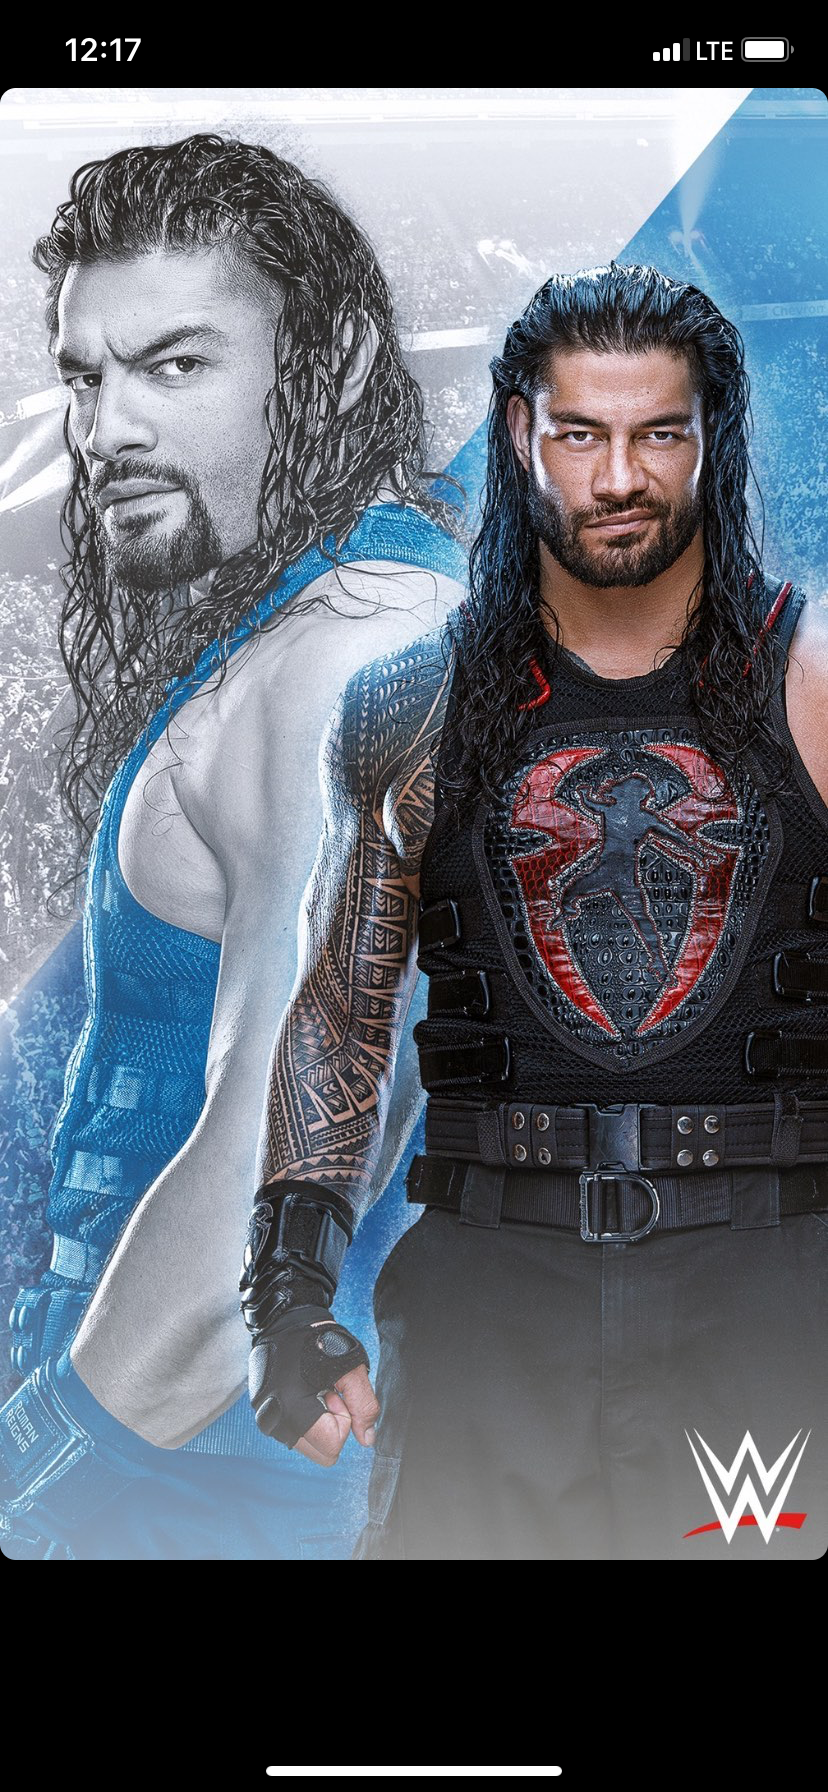 Pin By Adrianna Dunning On Ambreigns In 2020 Wwe Roman Reigns Wwe Superstar Roman Reigns Wrestling Wwe